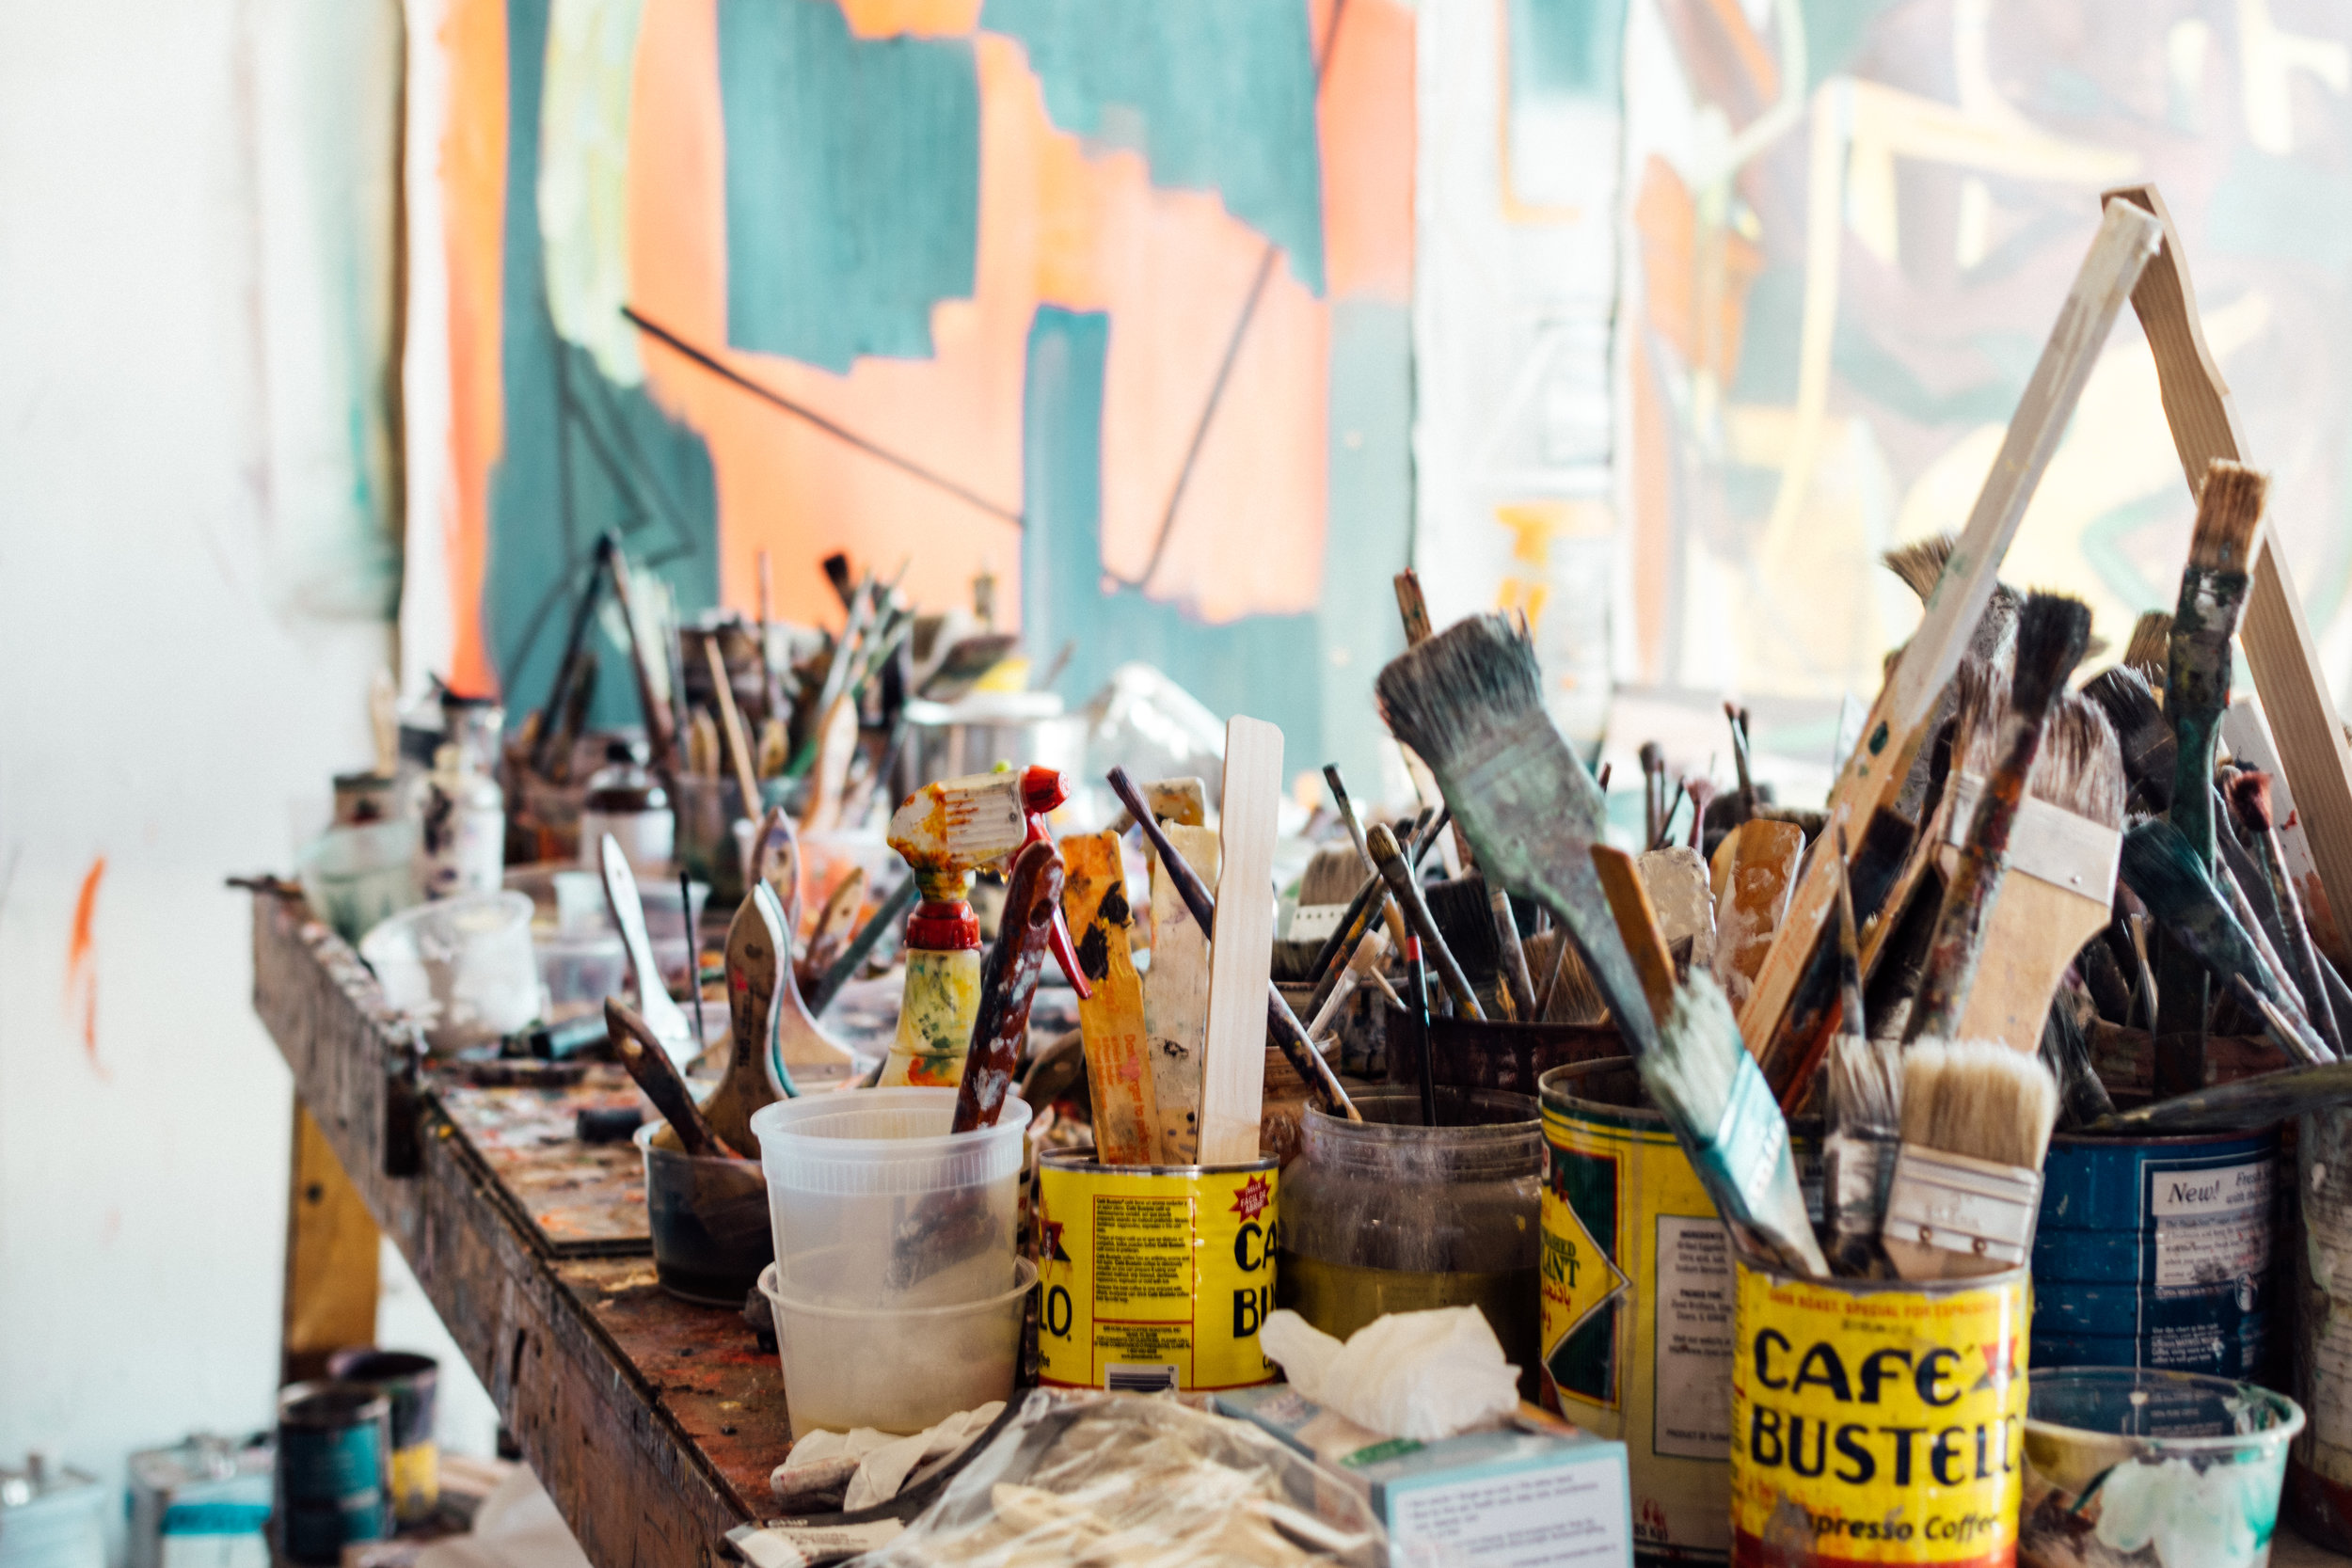 My Experience Volunteering with Art From The Streets - by Madeleine Caraluzzi